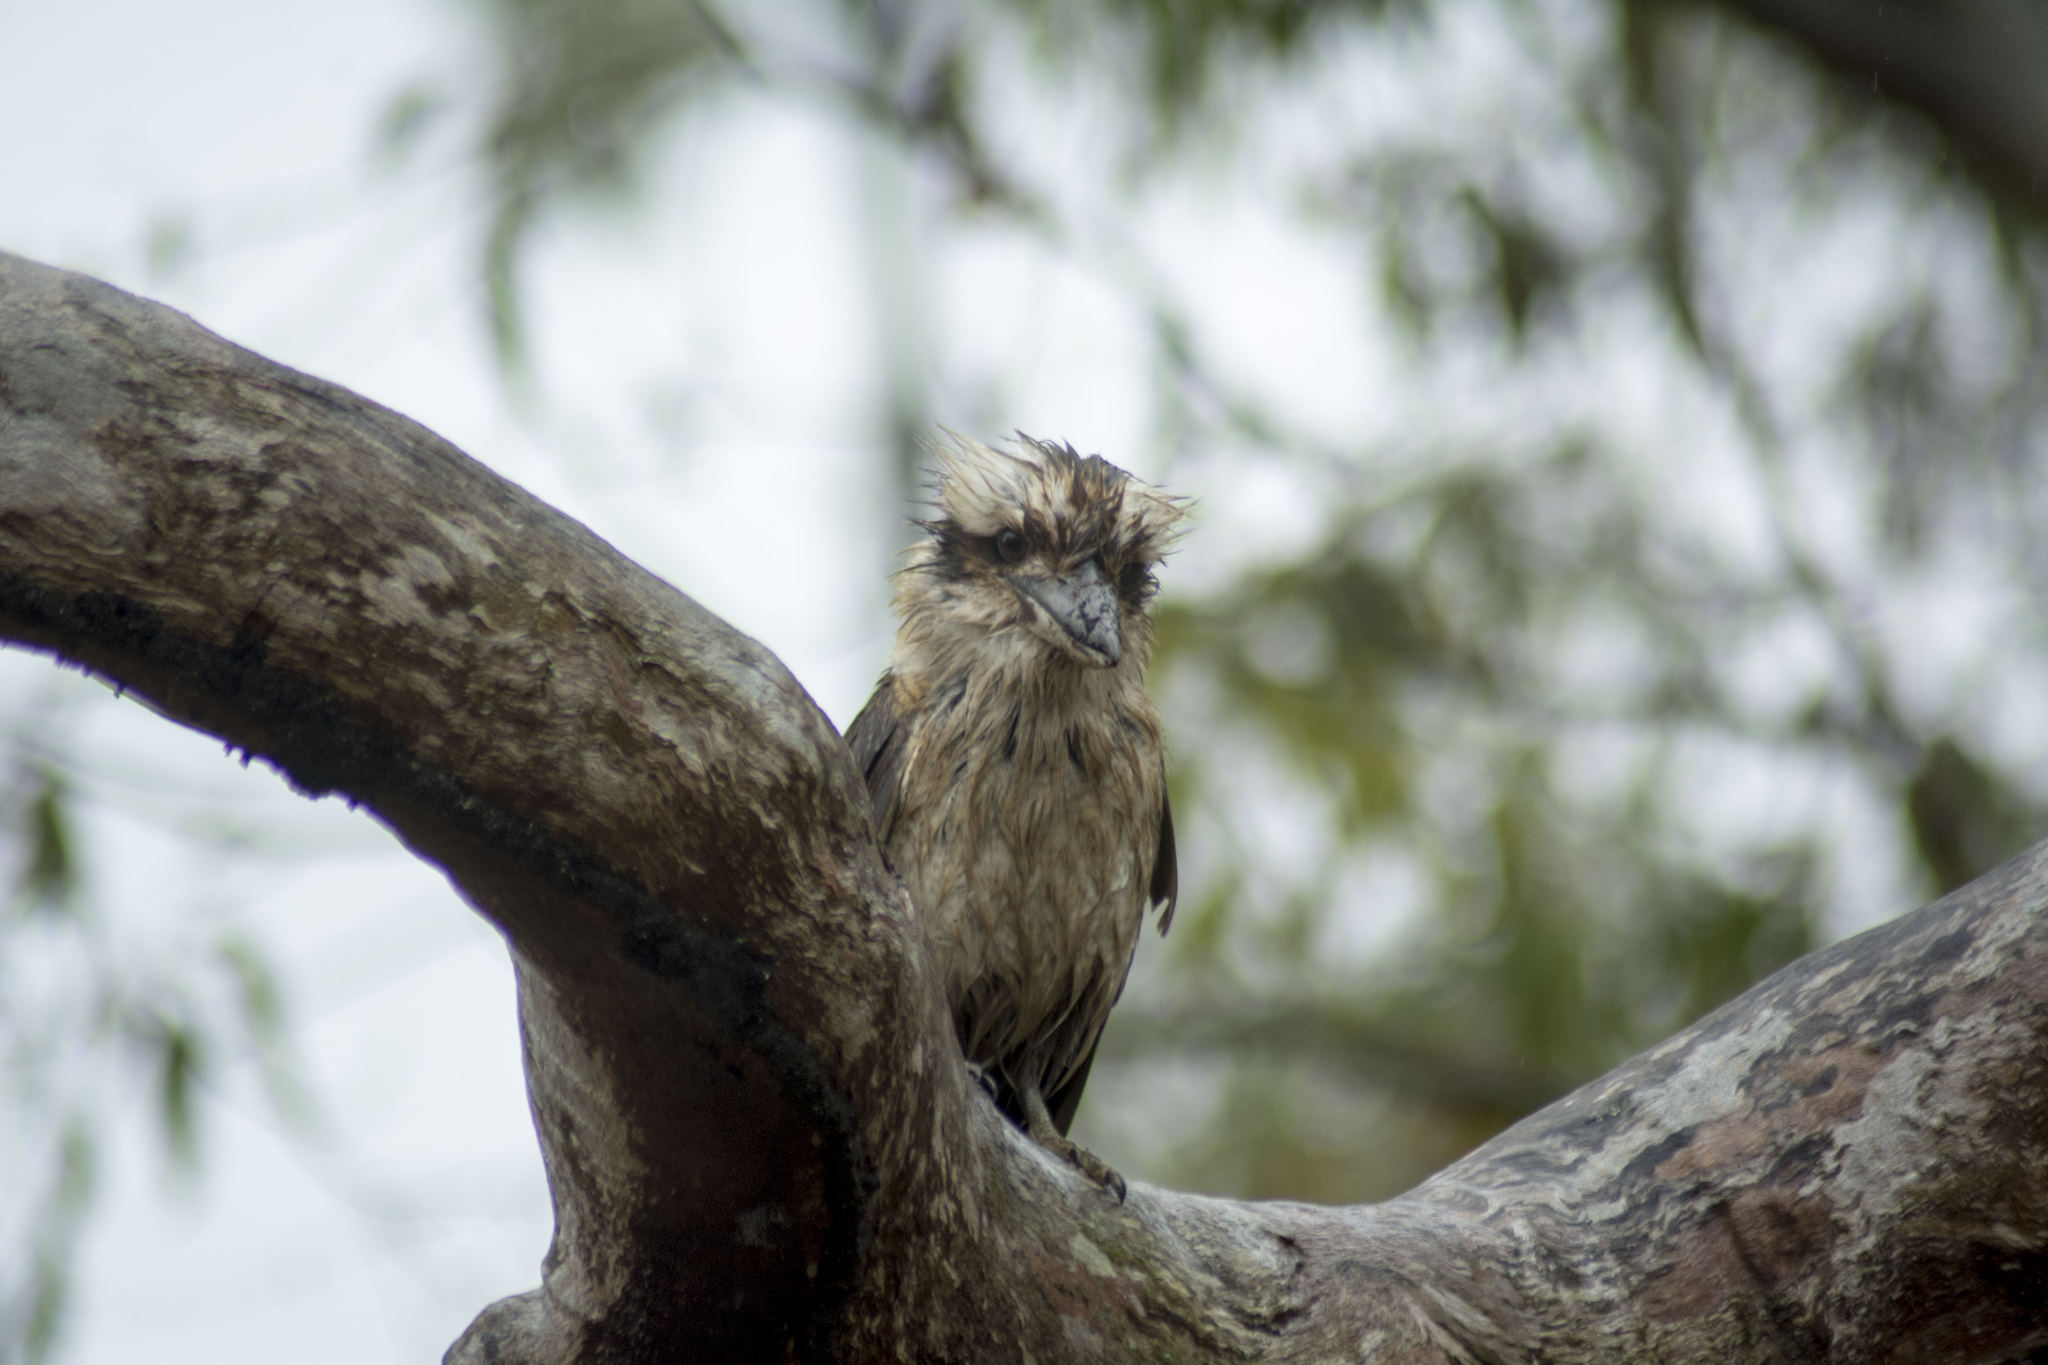 A very wet Kookaburra